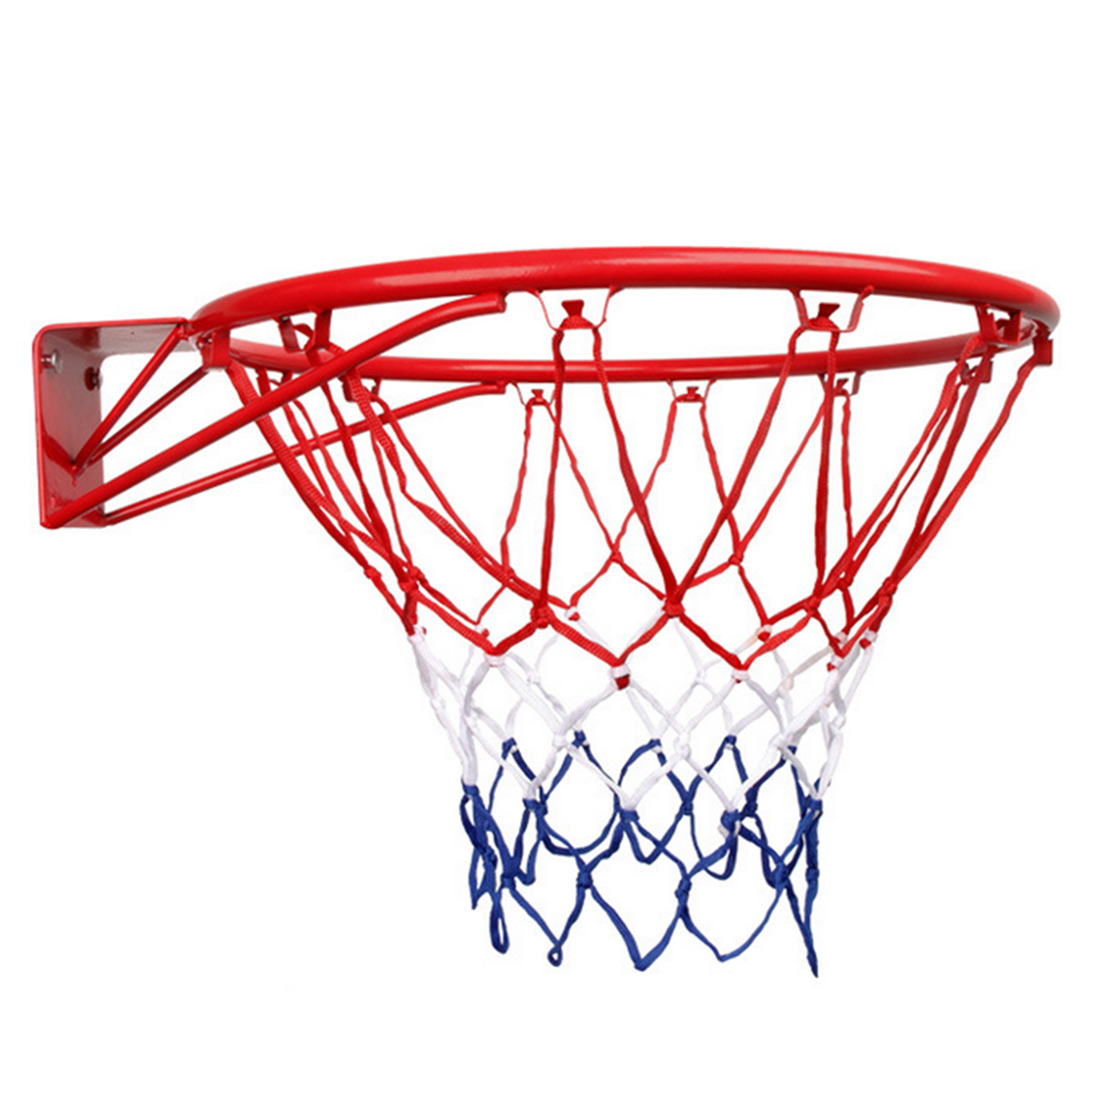 Surwish 45cm Children Teenager Sports Basketball Shooting Frame Toy Stand Outdoors Fun